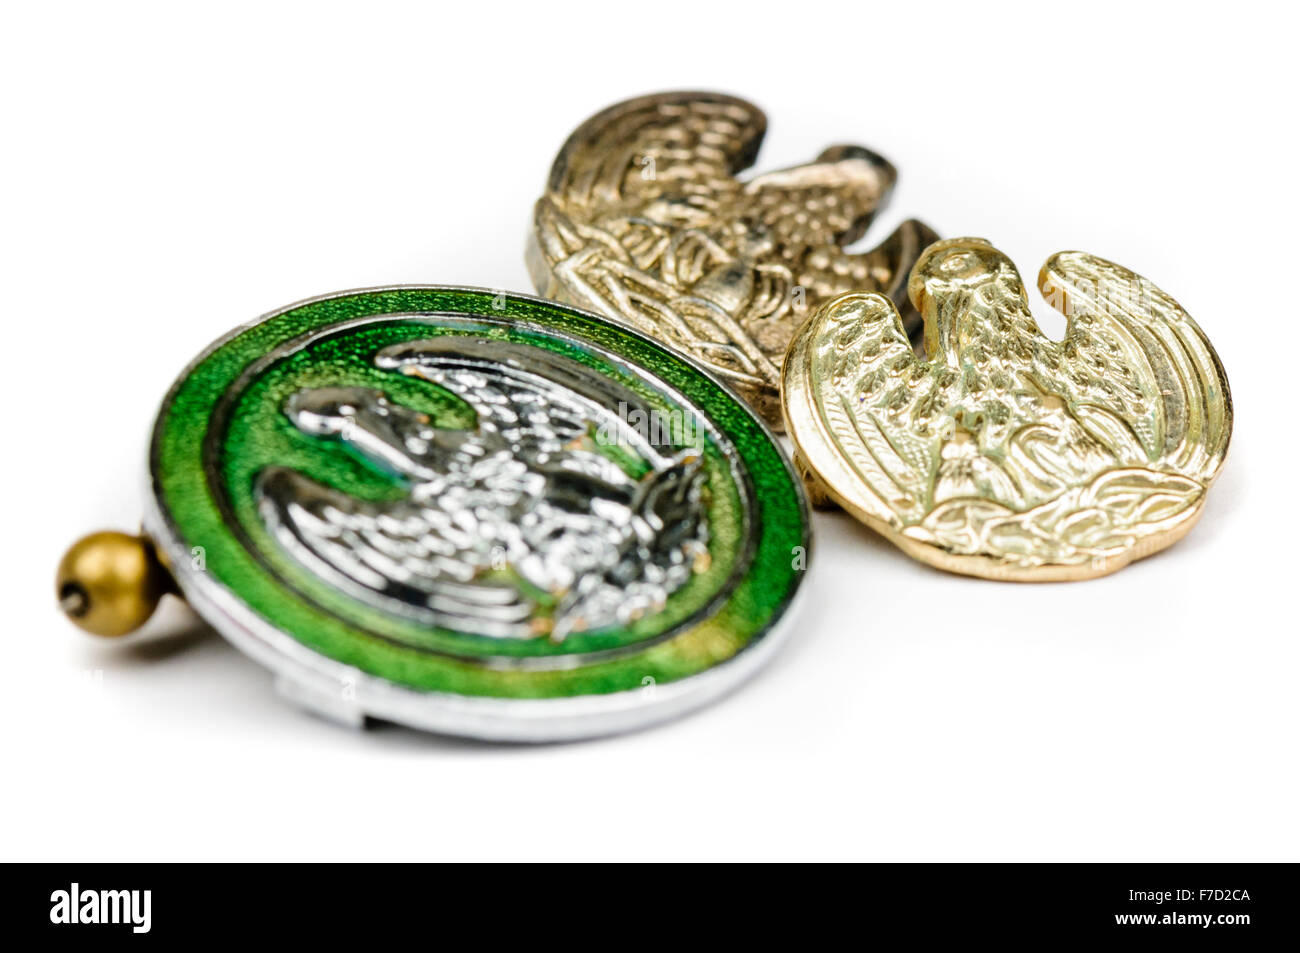 Closeup of a green, silver and gold pelican badges given for blood donation in the UK NHS. - Stock Image